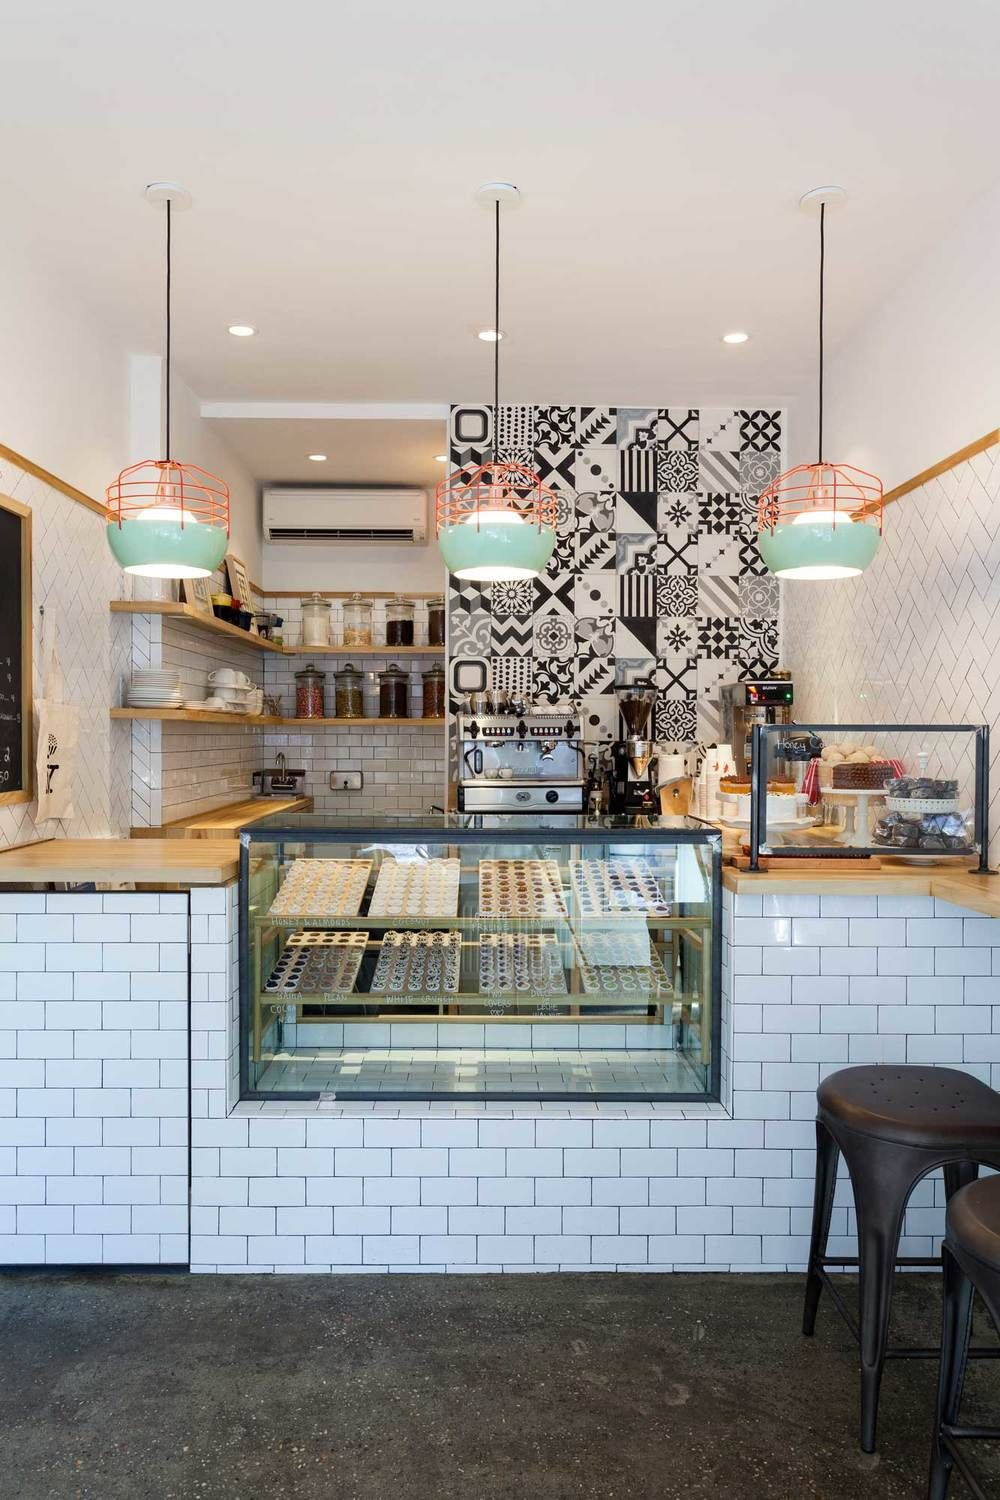 brigadeiro bakery new york | home decor / design ideas | pinterest